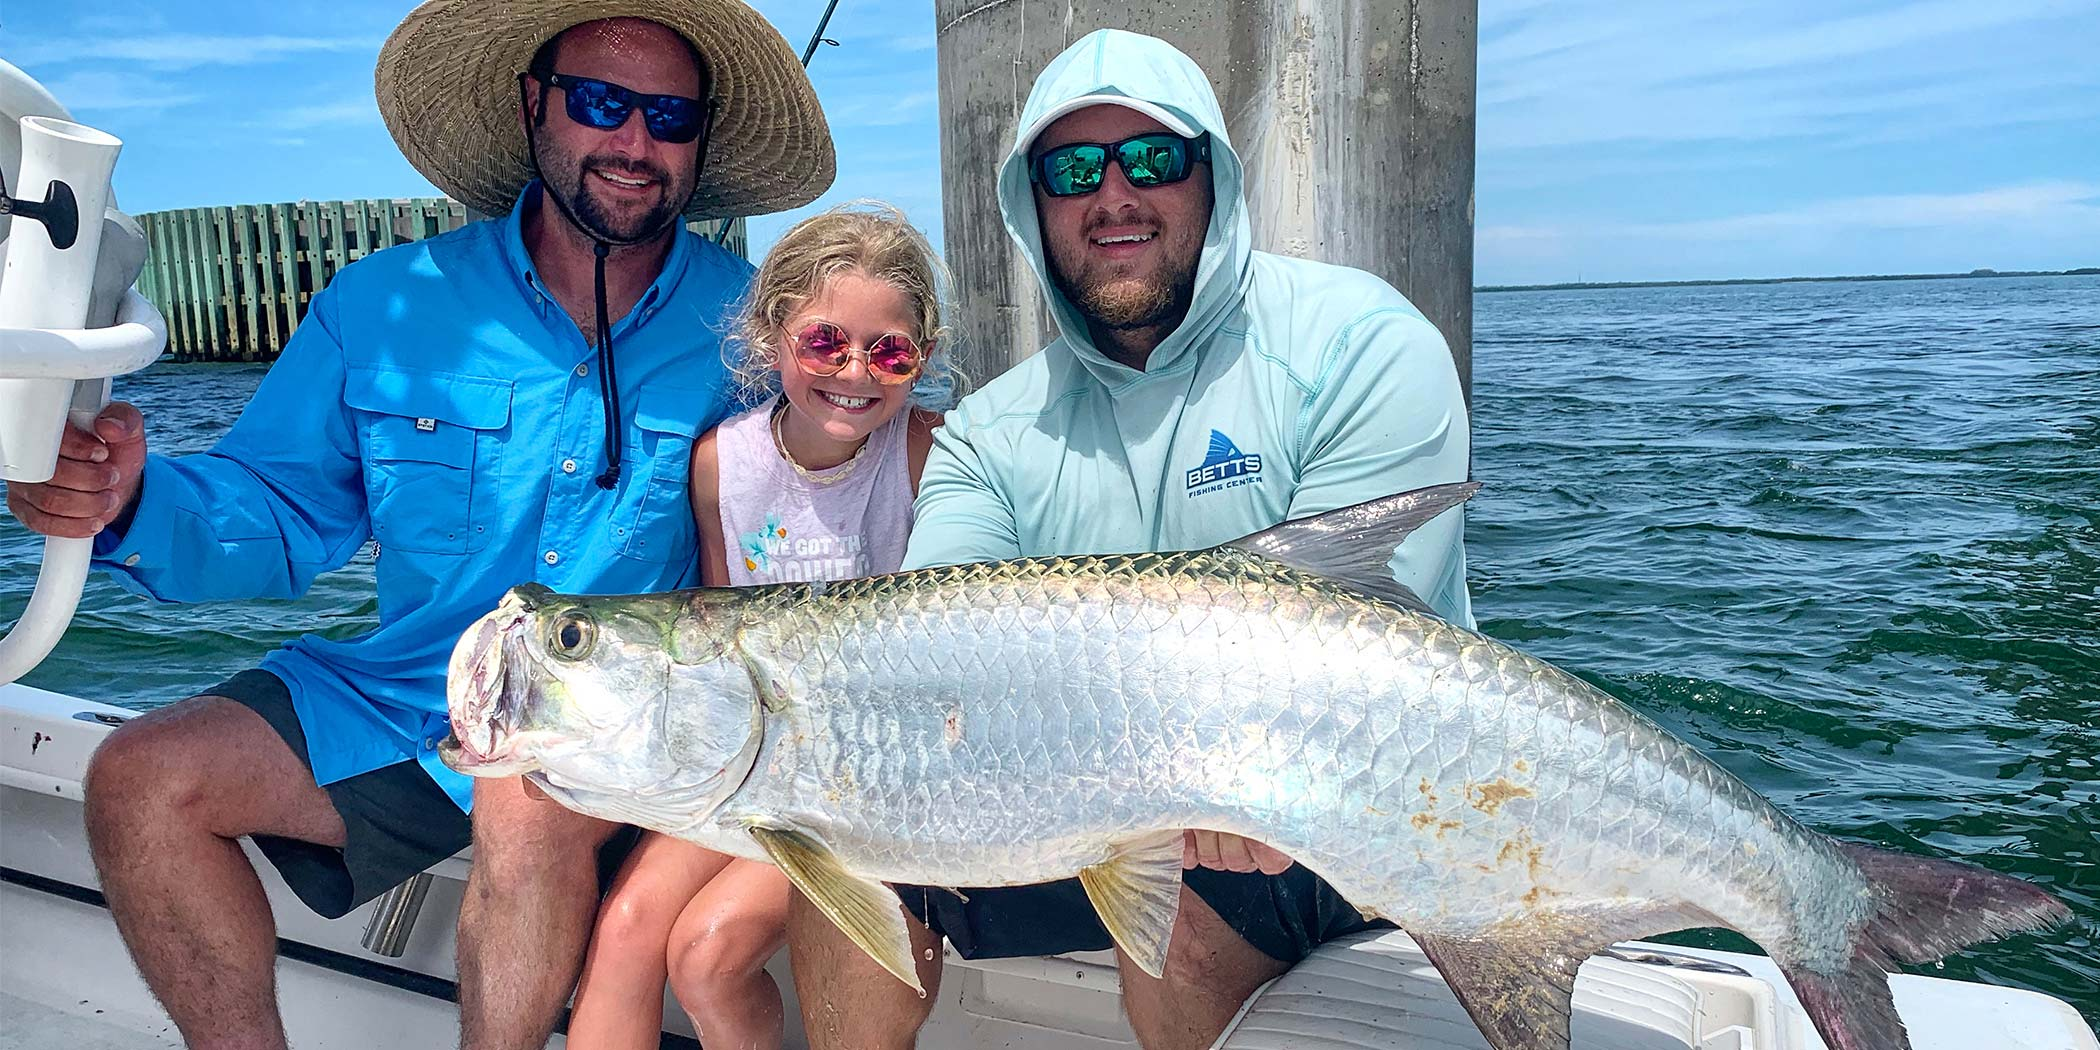 This family had a great time on their inshore charter, which included landing this big tarpon!